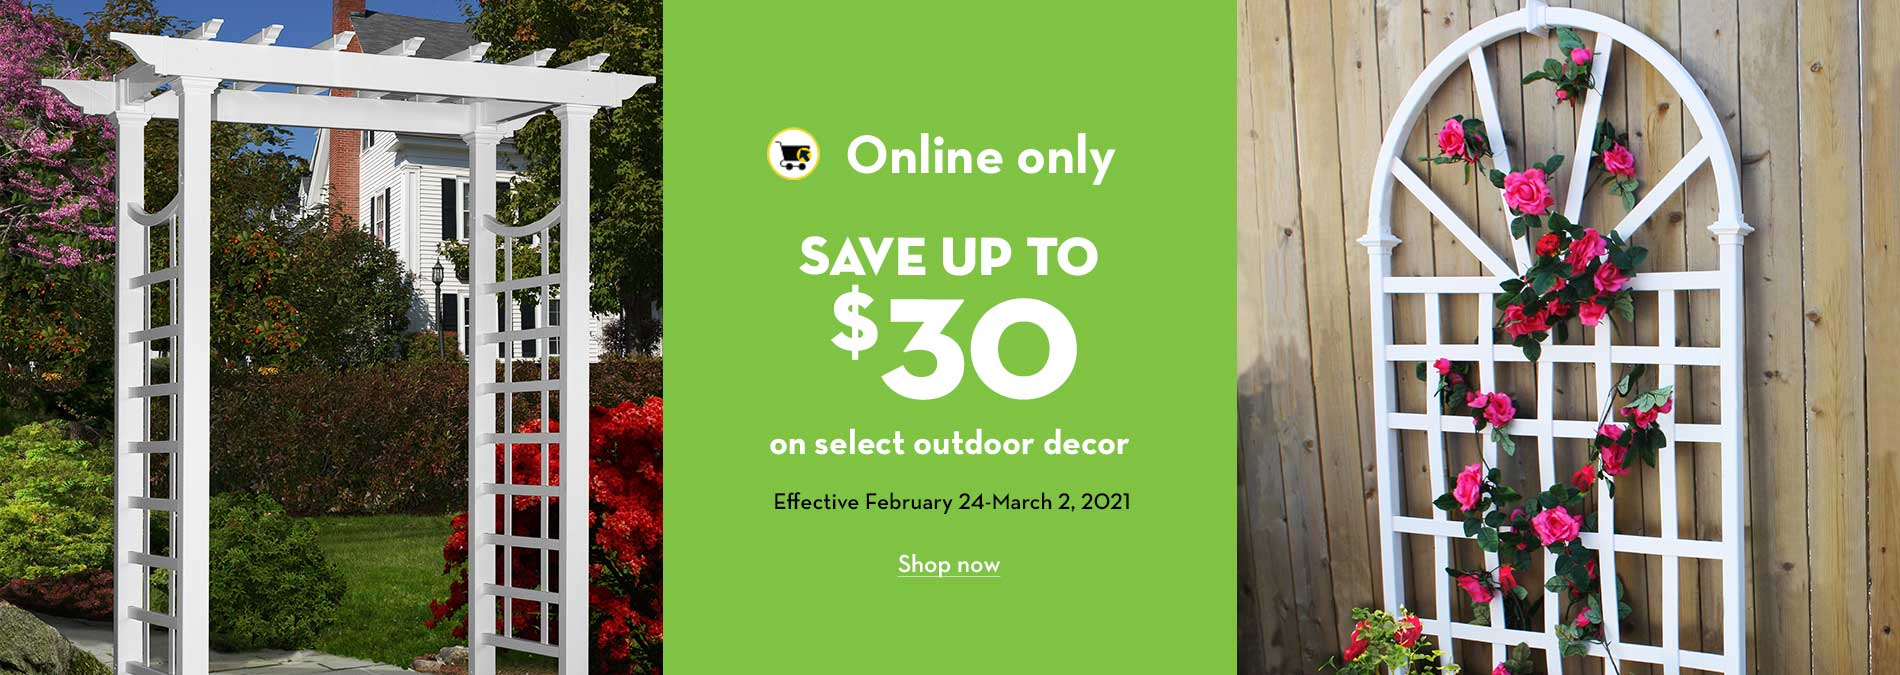 Online only. Save up to $30 on select outdoor decor. Effective February 24- March 2, 2021.